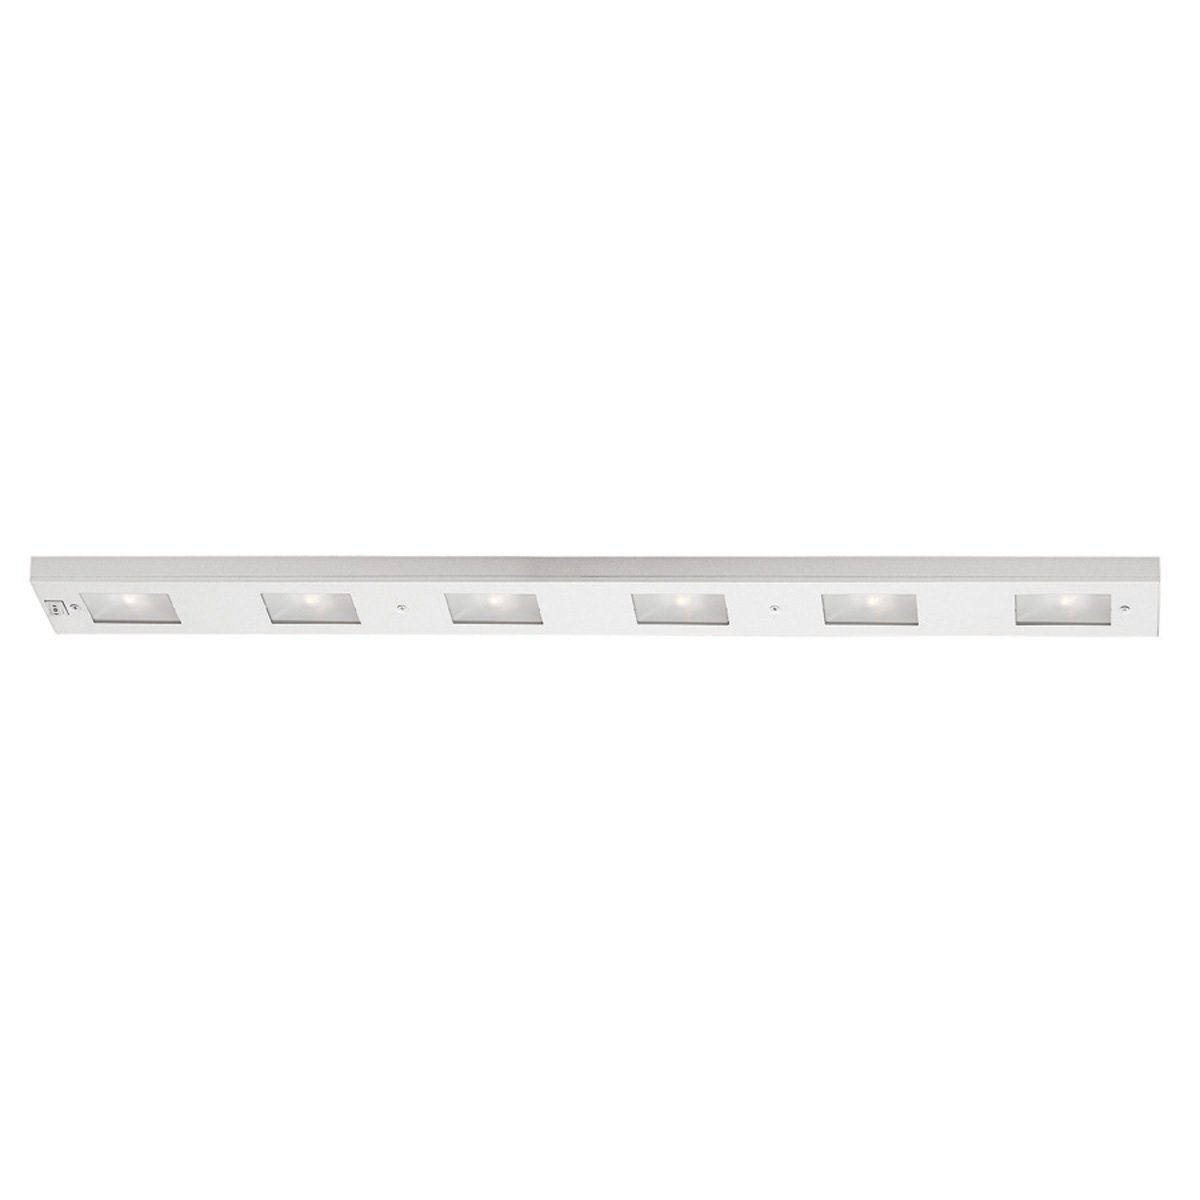 WAC Lighting BA-LIX-6-WT Premium Line Voltage 6-Light Xenon Under Cabinet, White Finish with Frosted Glass Lens by WAC Lighting (Image #1)